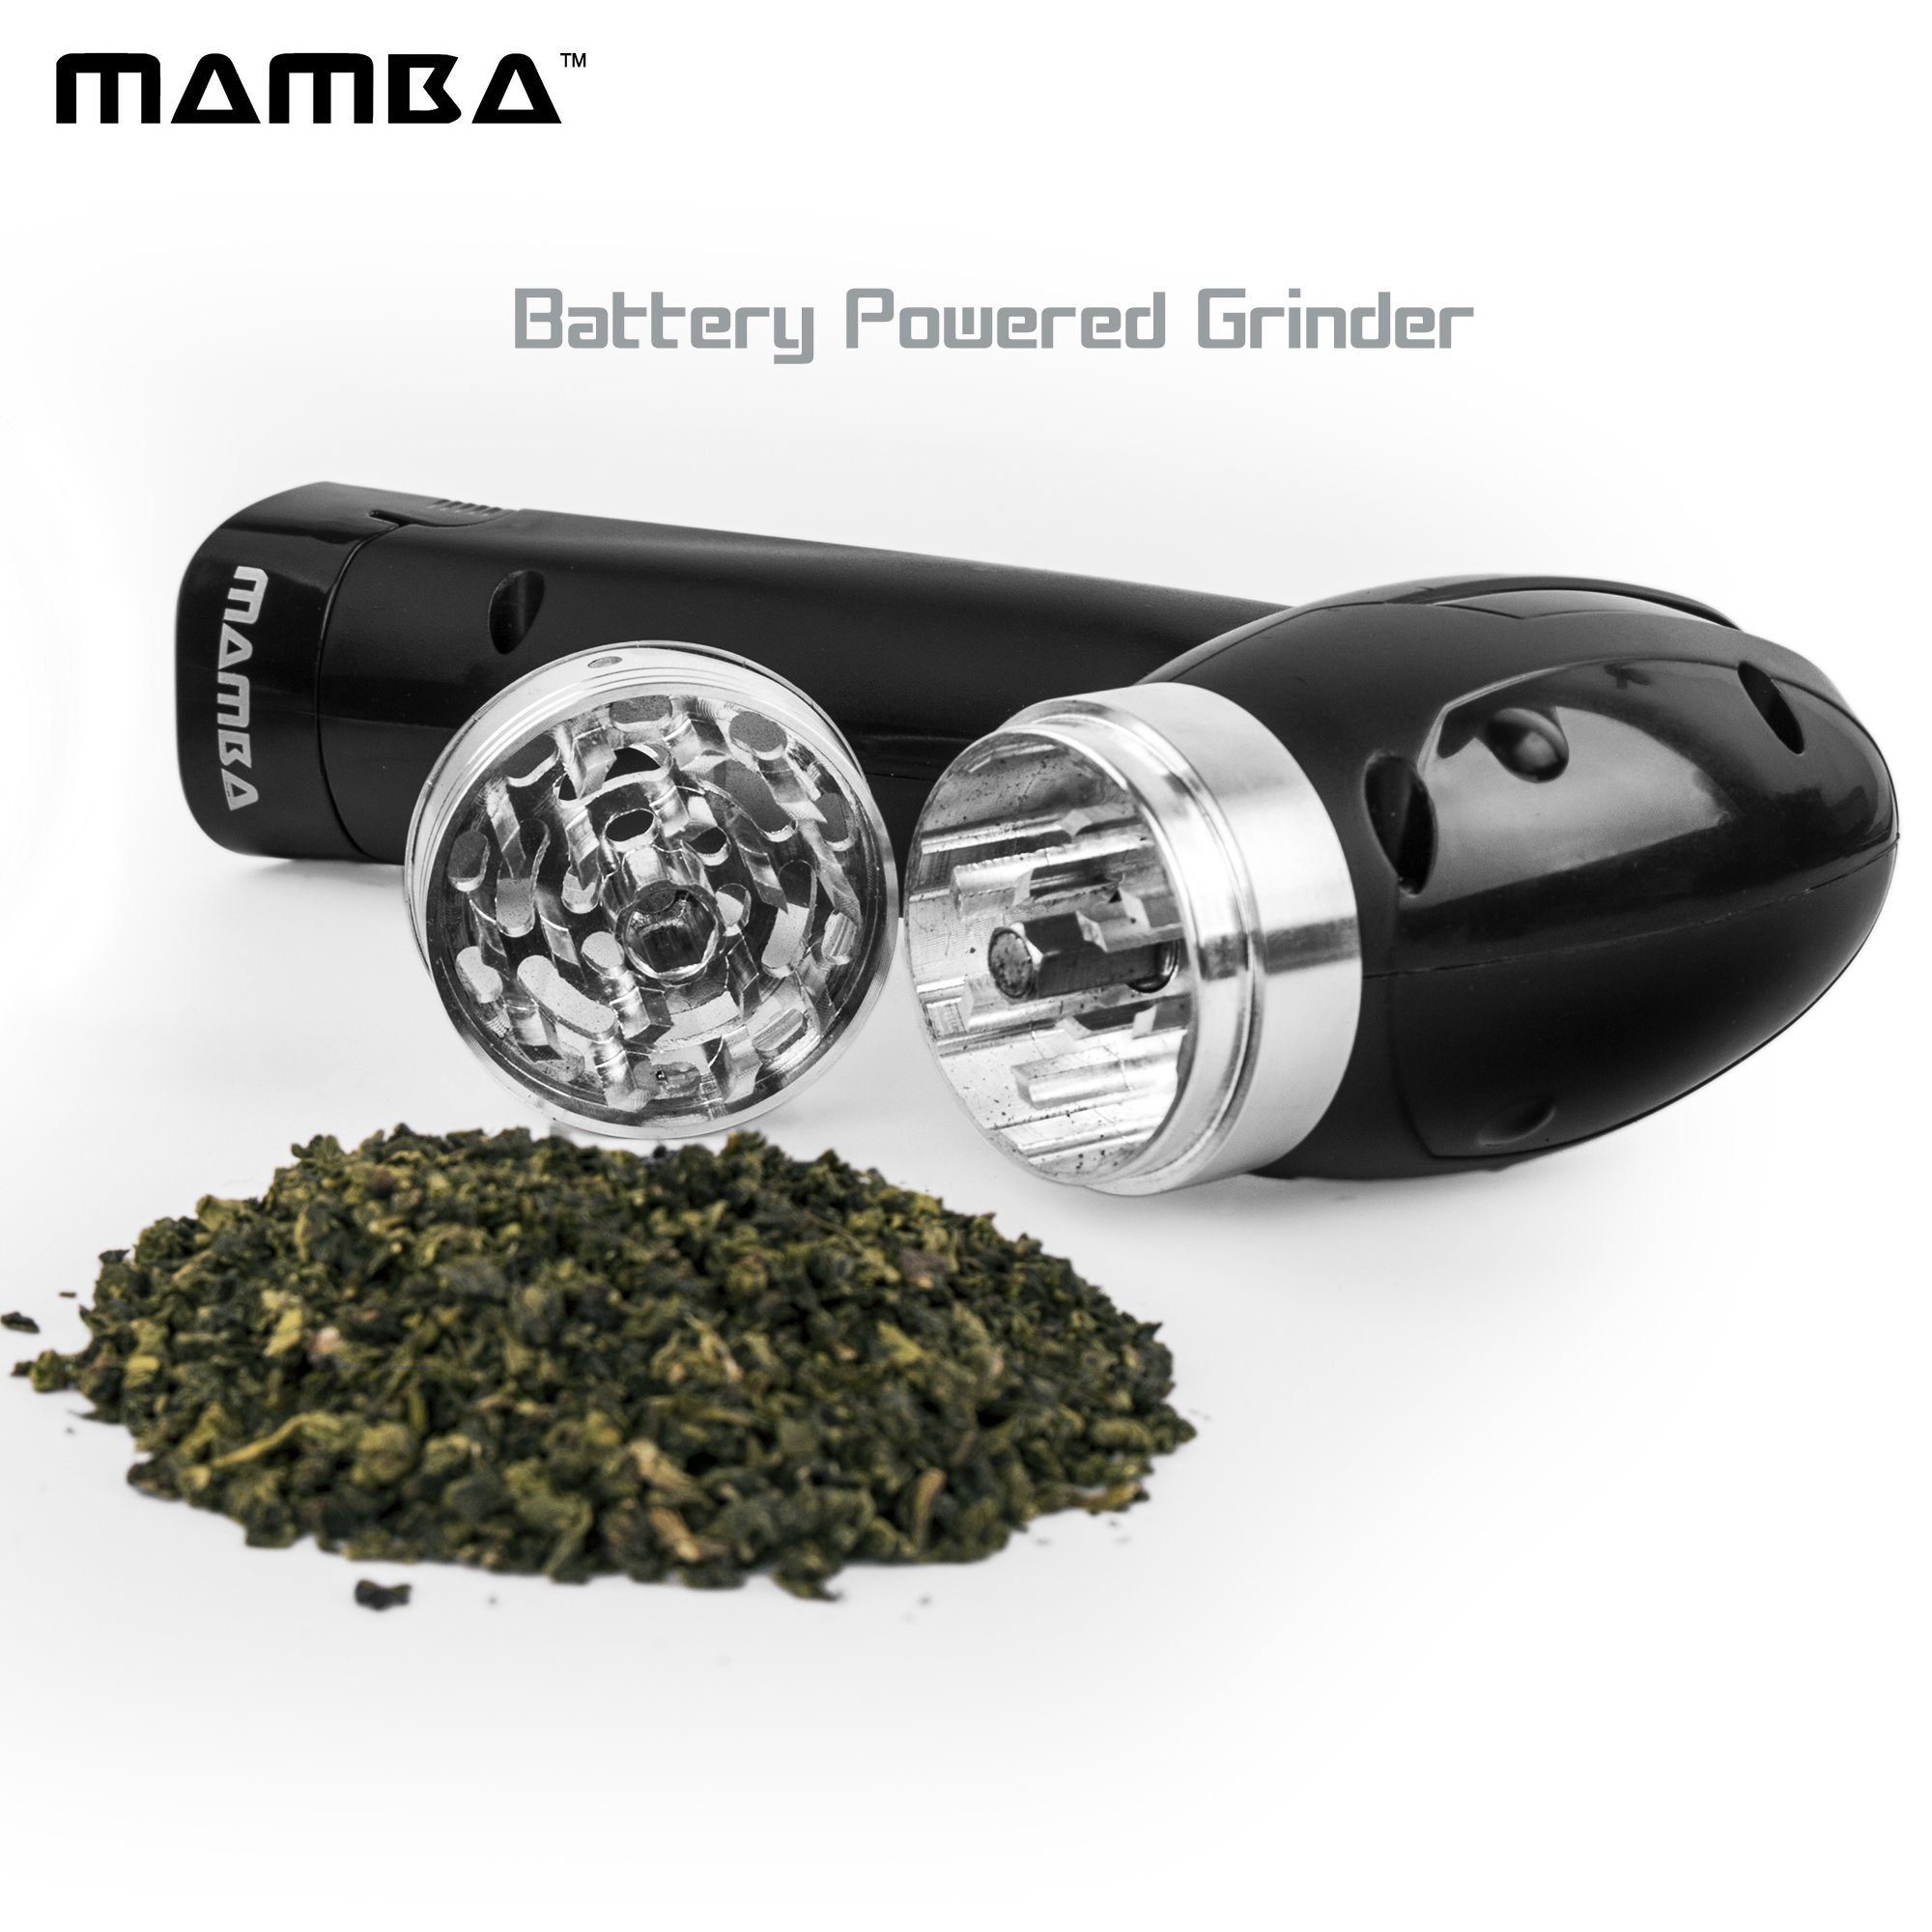 Mamba Electric Herb Grinder 20X Faster than Manual Grinders Automatic Herb Crusher. Never Jams. Easy-To-Use One-Handed Operation. Grinds the Toughest Herbs Optimal Grinding With Minimum Waste